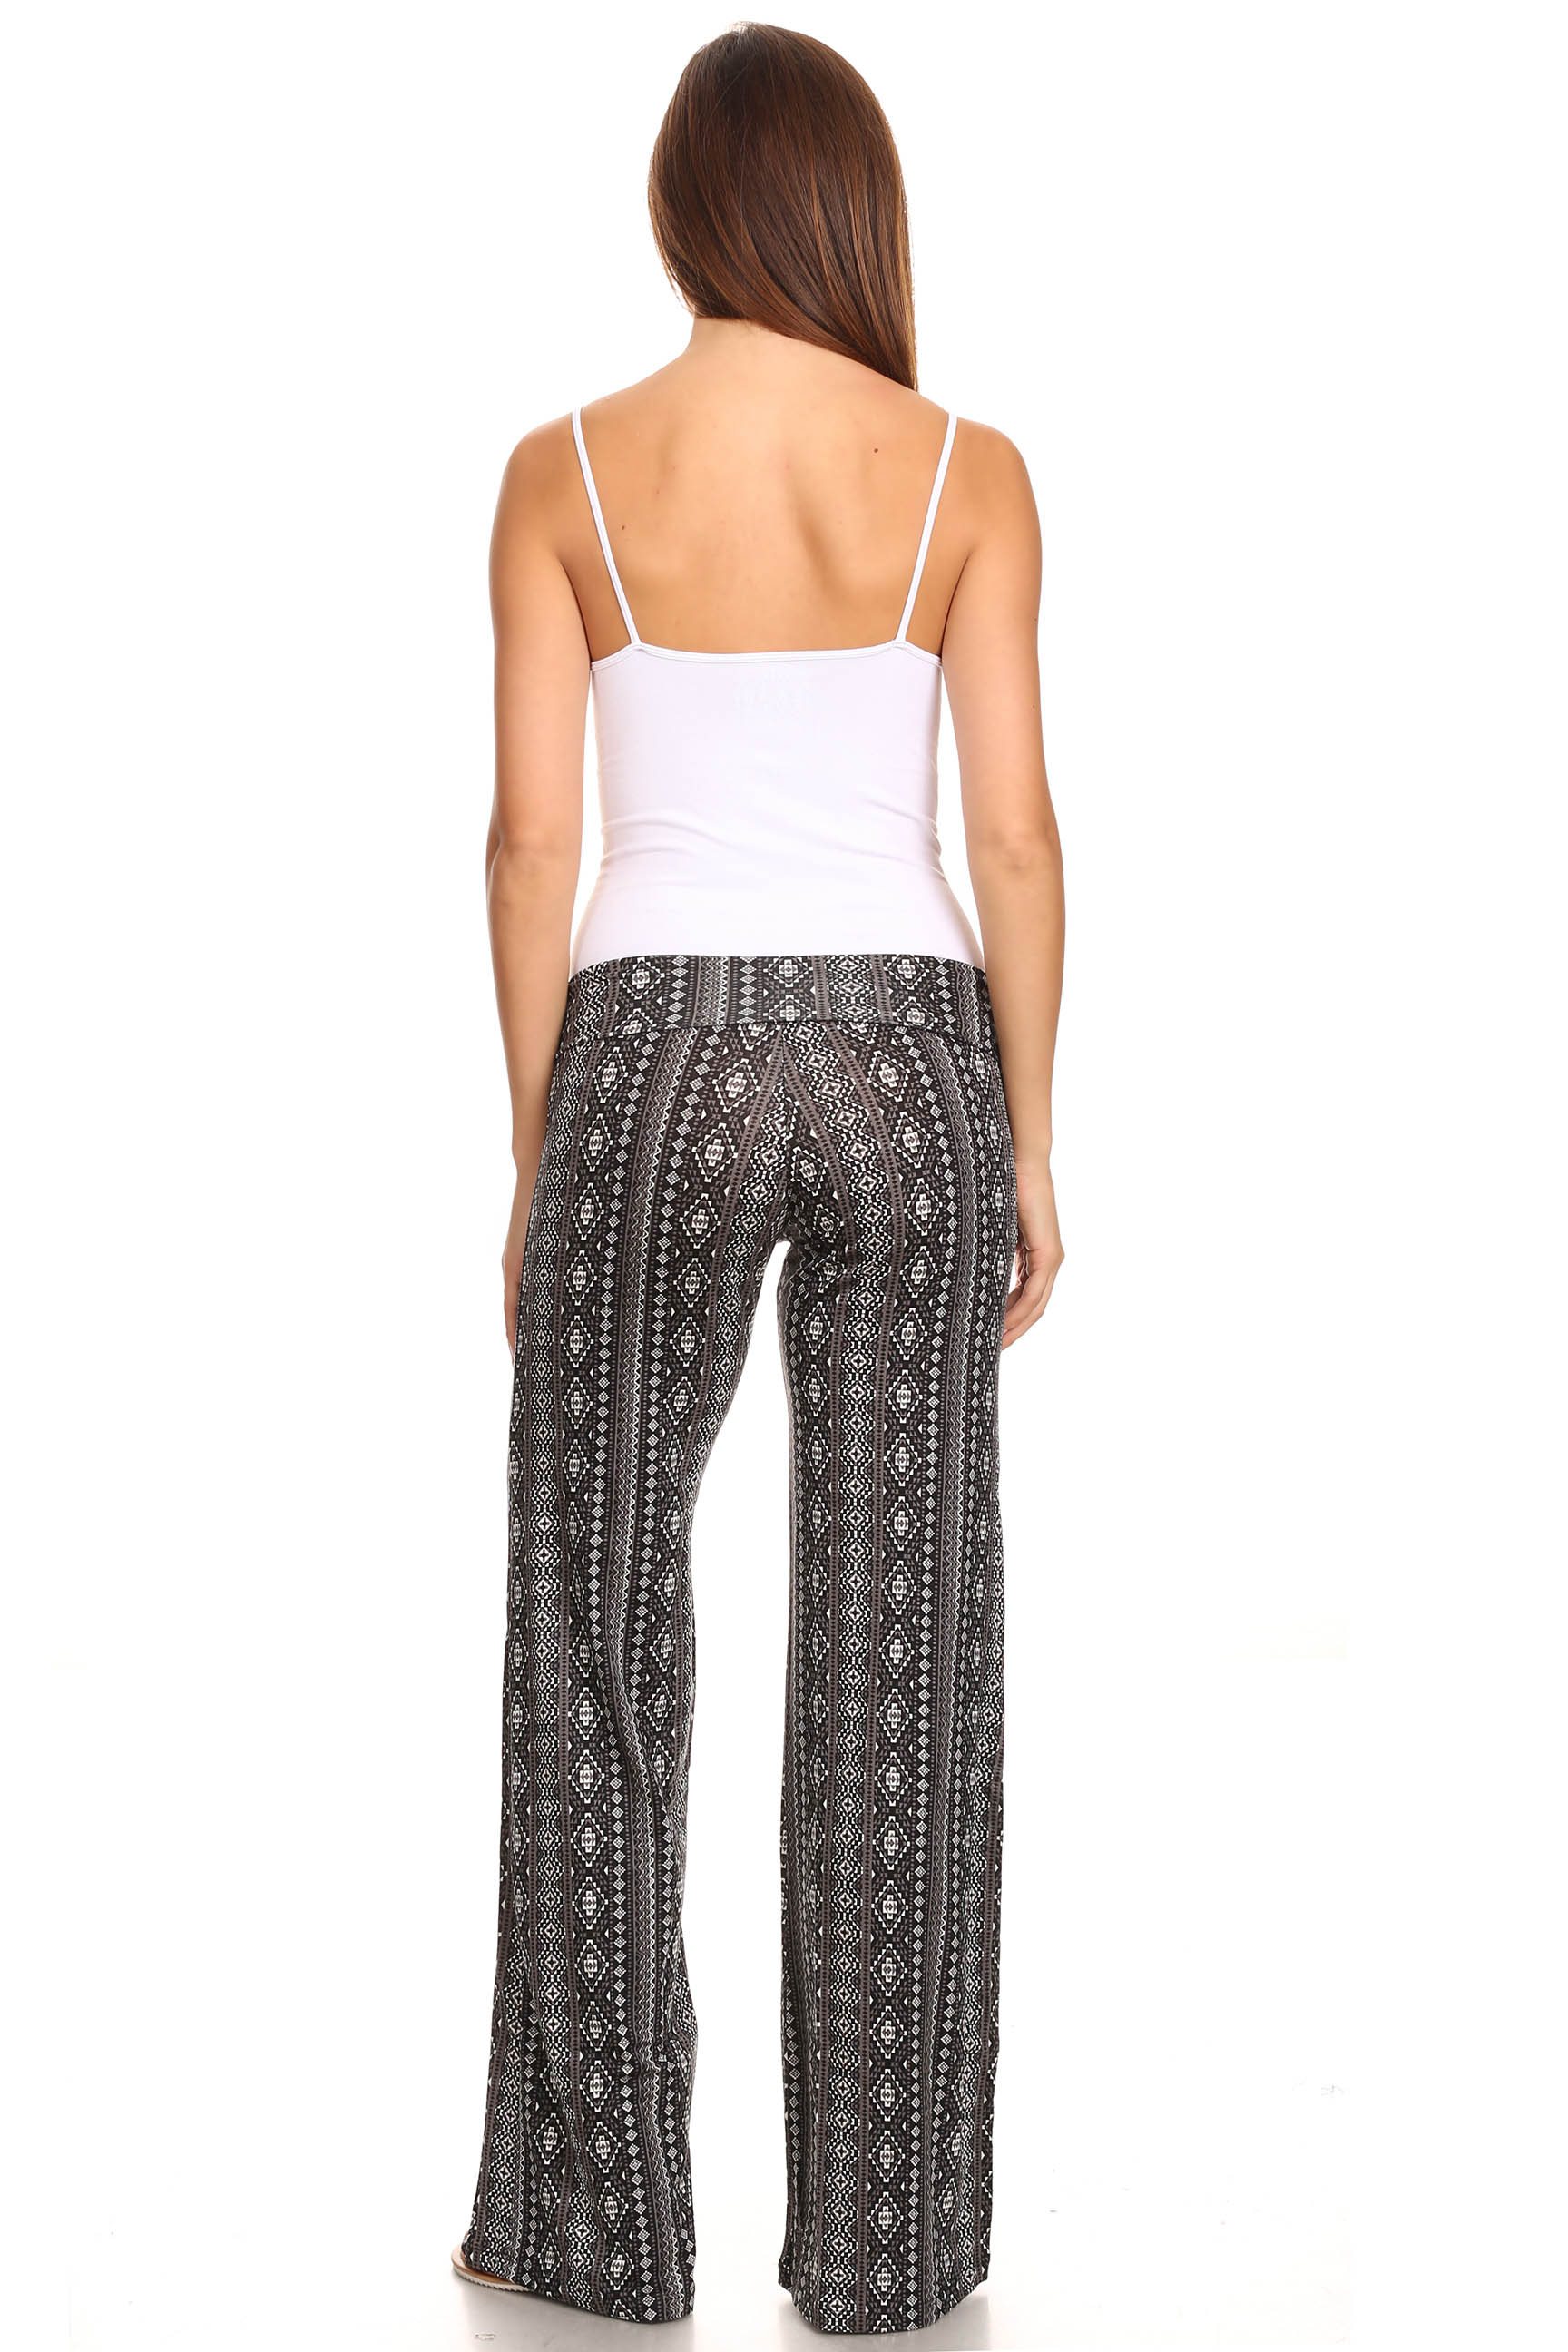 Wonderful Uniting The Solace Of Jeans And The Windy Appearance Of A Skirt, Palazzo Pants Have Become A Popular Choice Among Women The Best Thing About  Along These Lines, You Can Buy A Palazzo Pants Designs